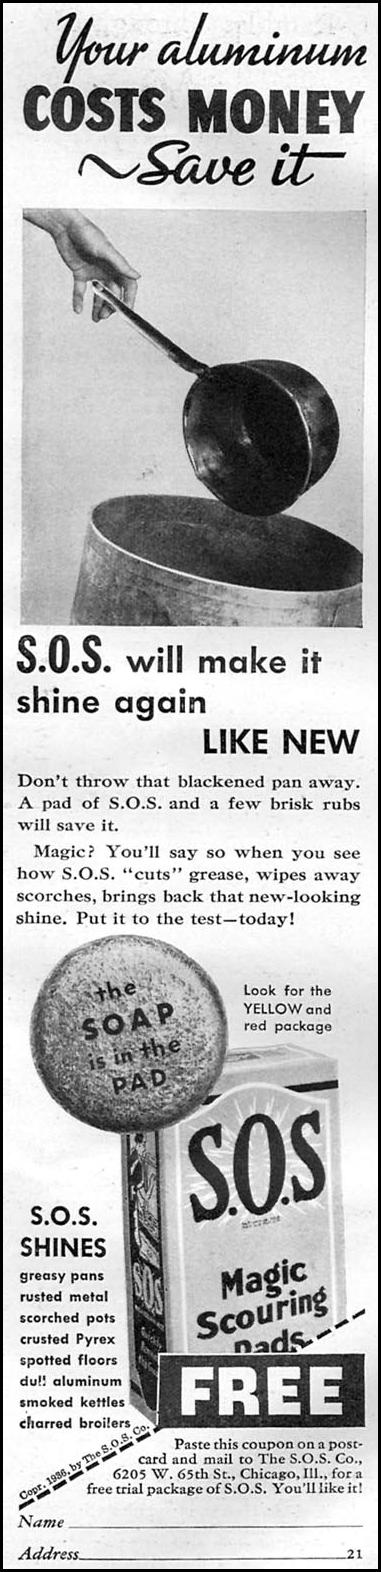 S.O.S MAGIC SCOURING PADS GOOD HOUSEKEEPING 04/01/1936 p. 225